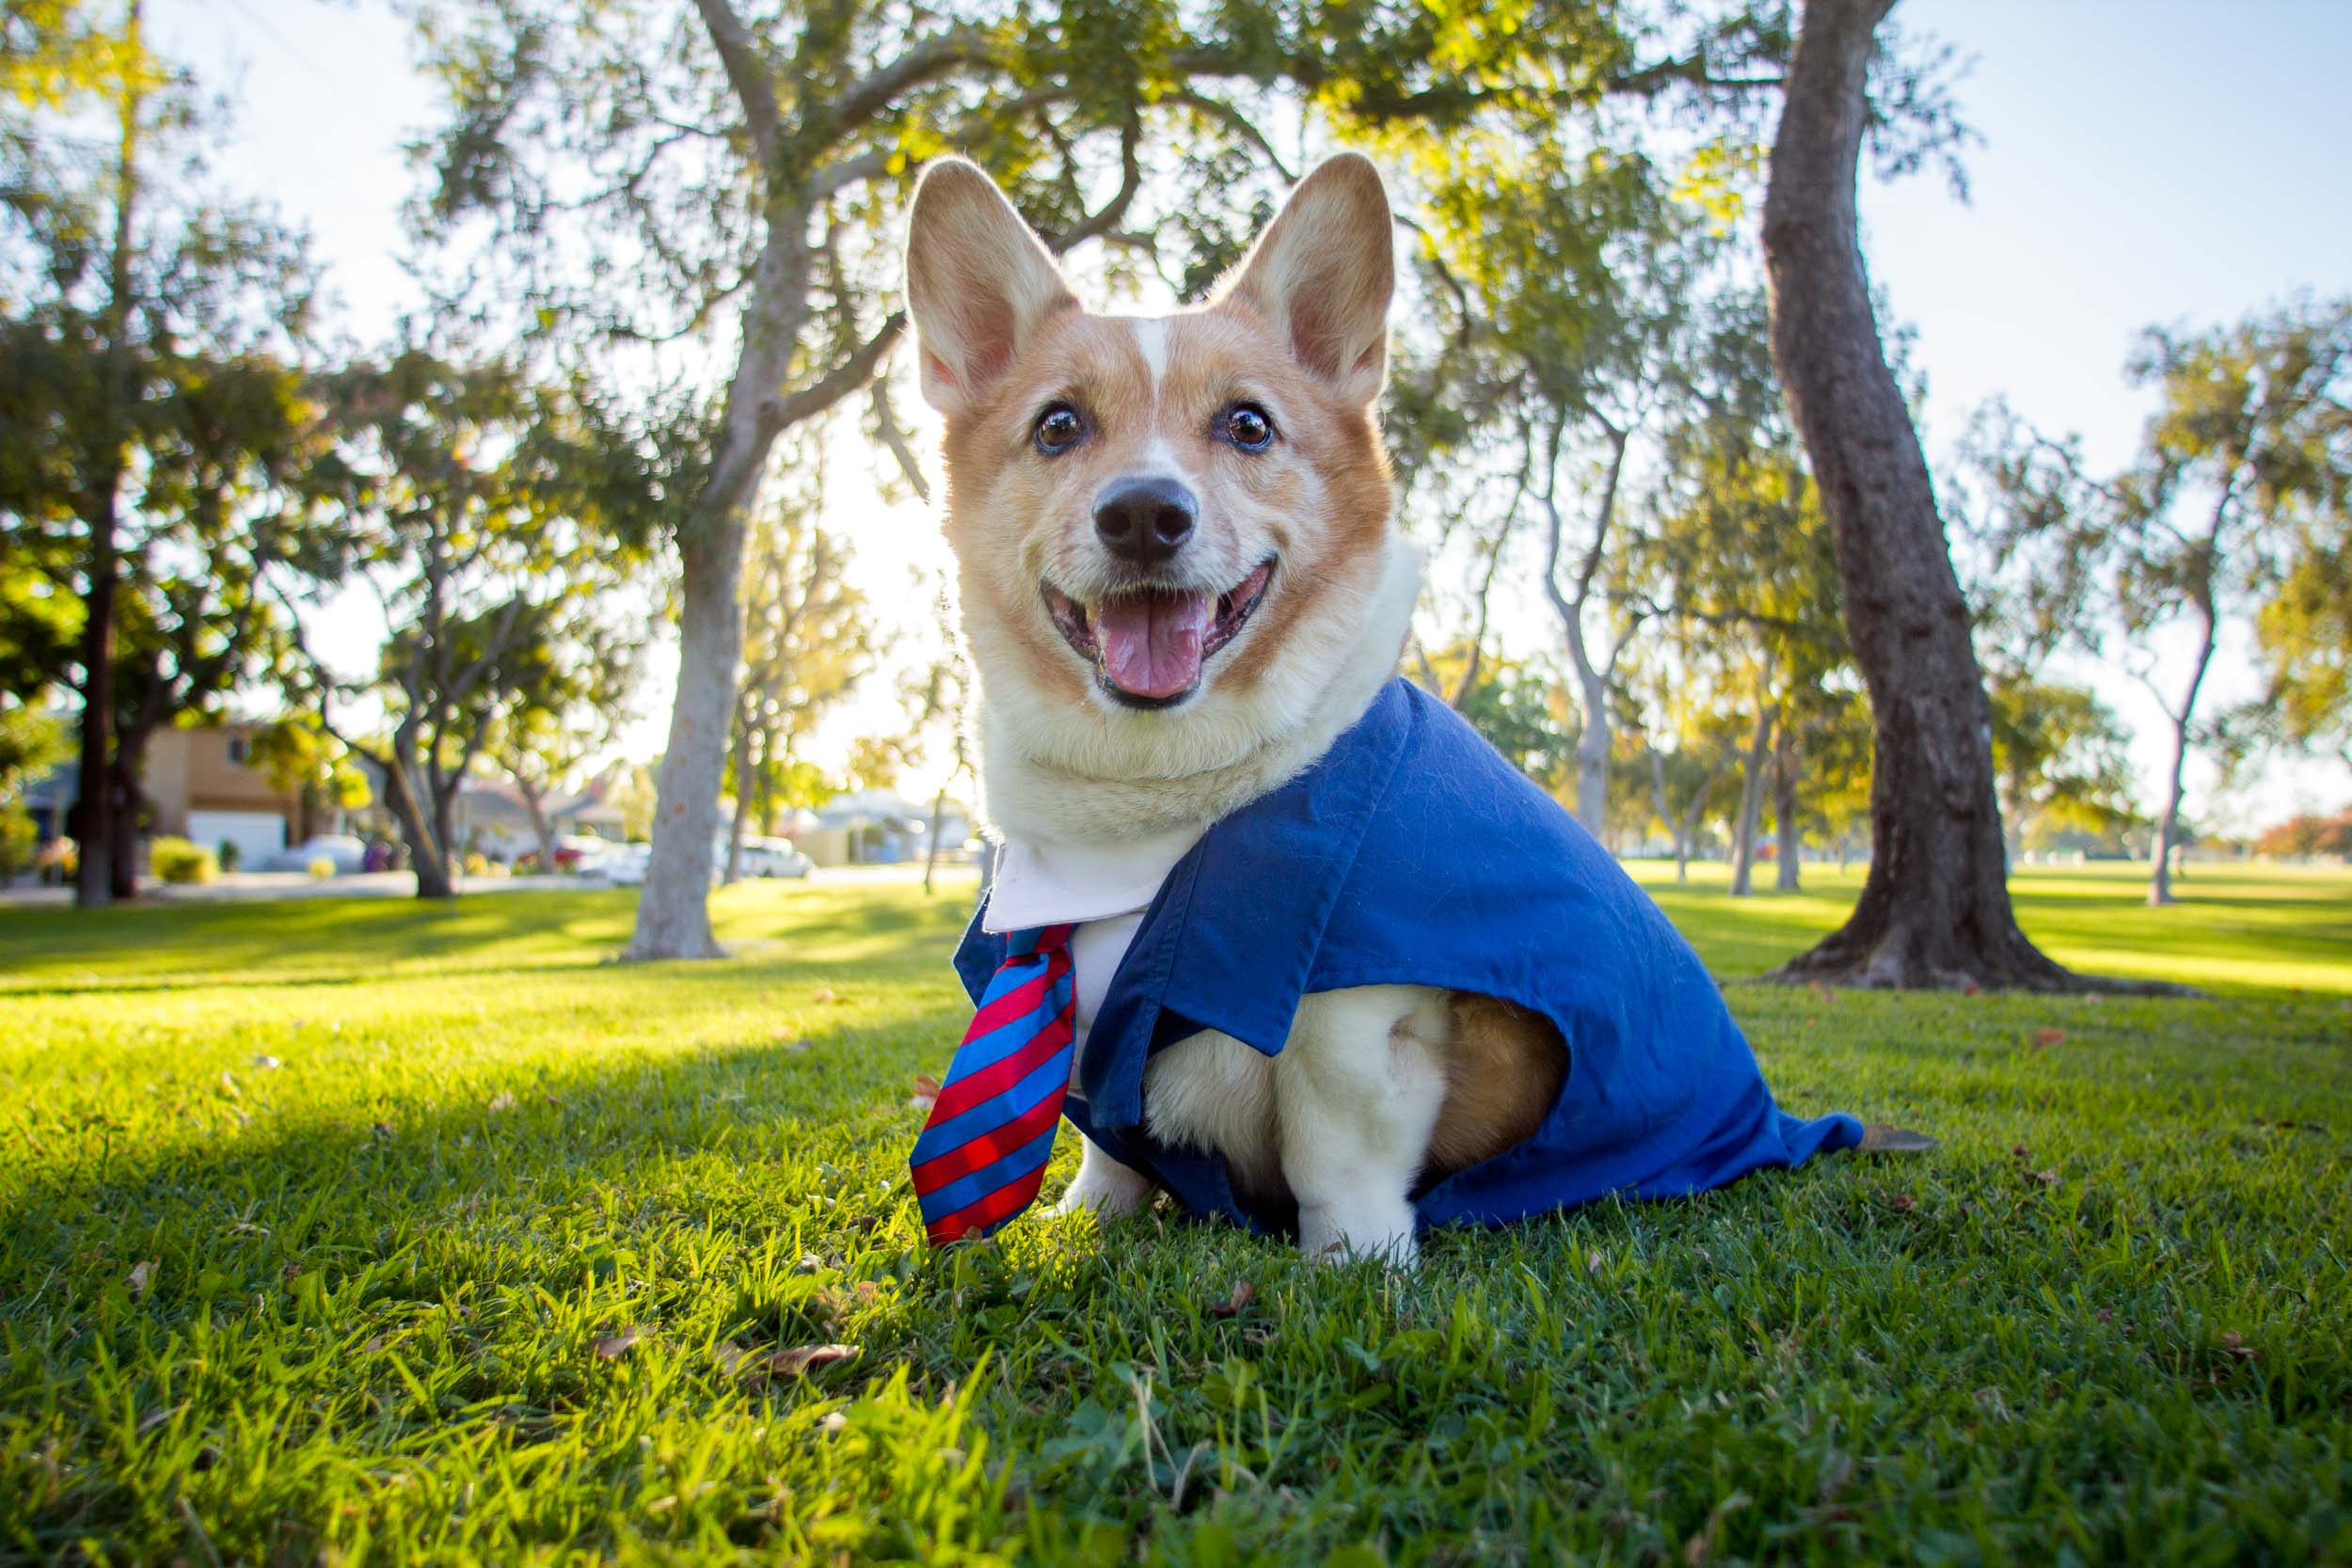 Mr. Pickles. The inspiration, founder, mascot, and brand ambassador of So Cal Corgi Beach Day.